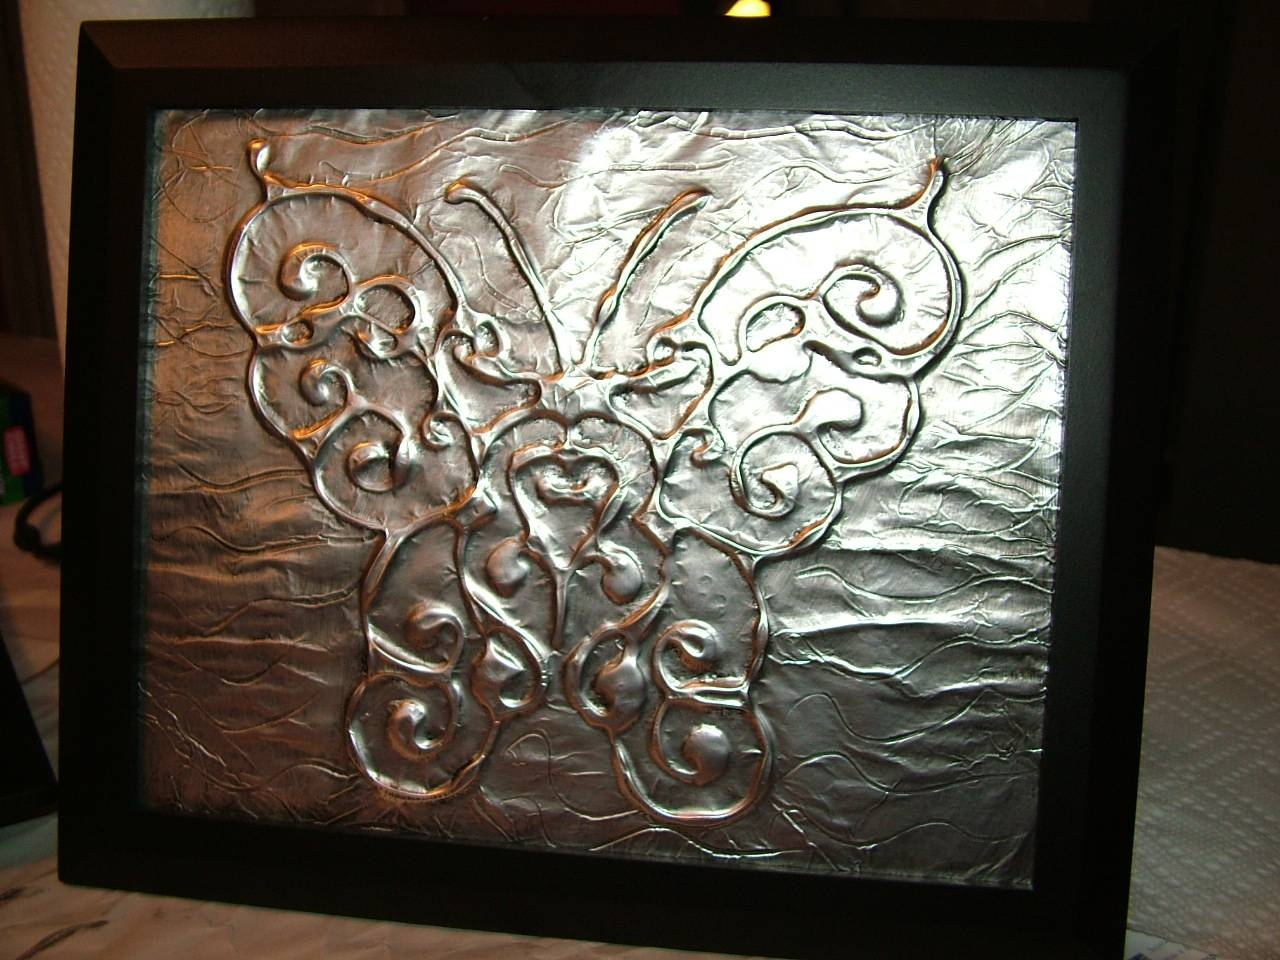 Art: Diy Metal Wall Art Intended For Current Faux Metal Wall Art (View 1 of 20)